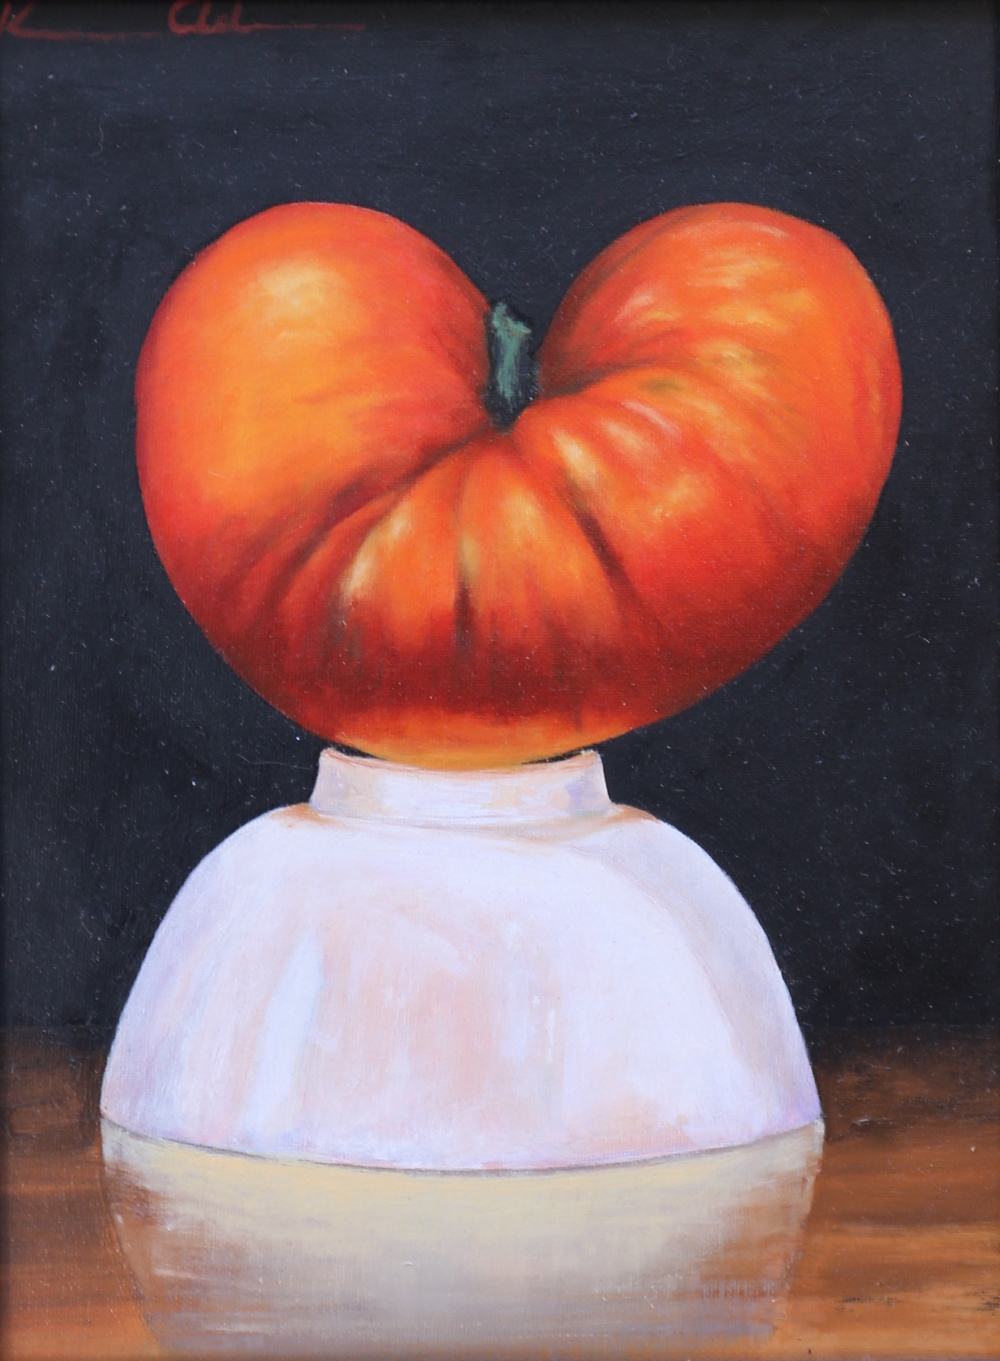 Tomato & White Bowl 9 X 12 oil on panel